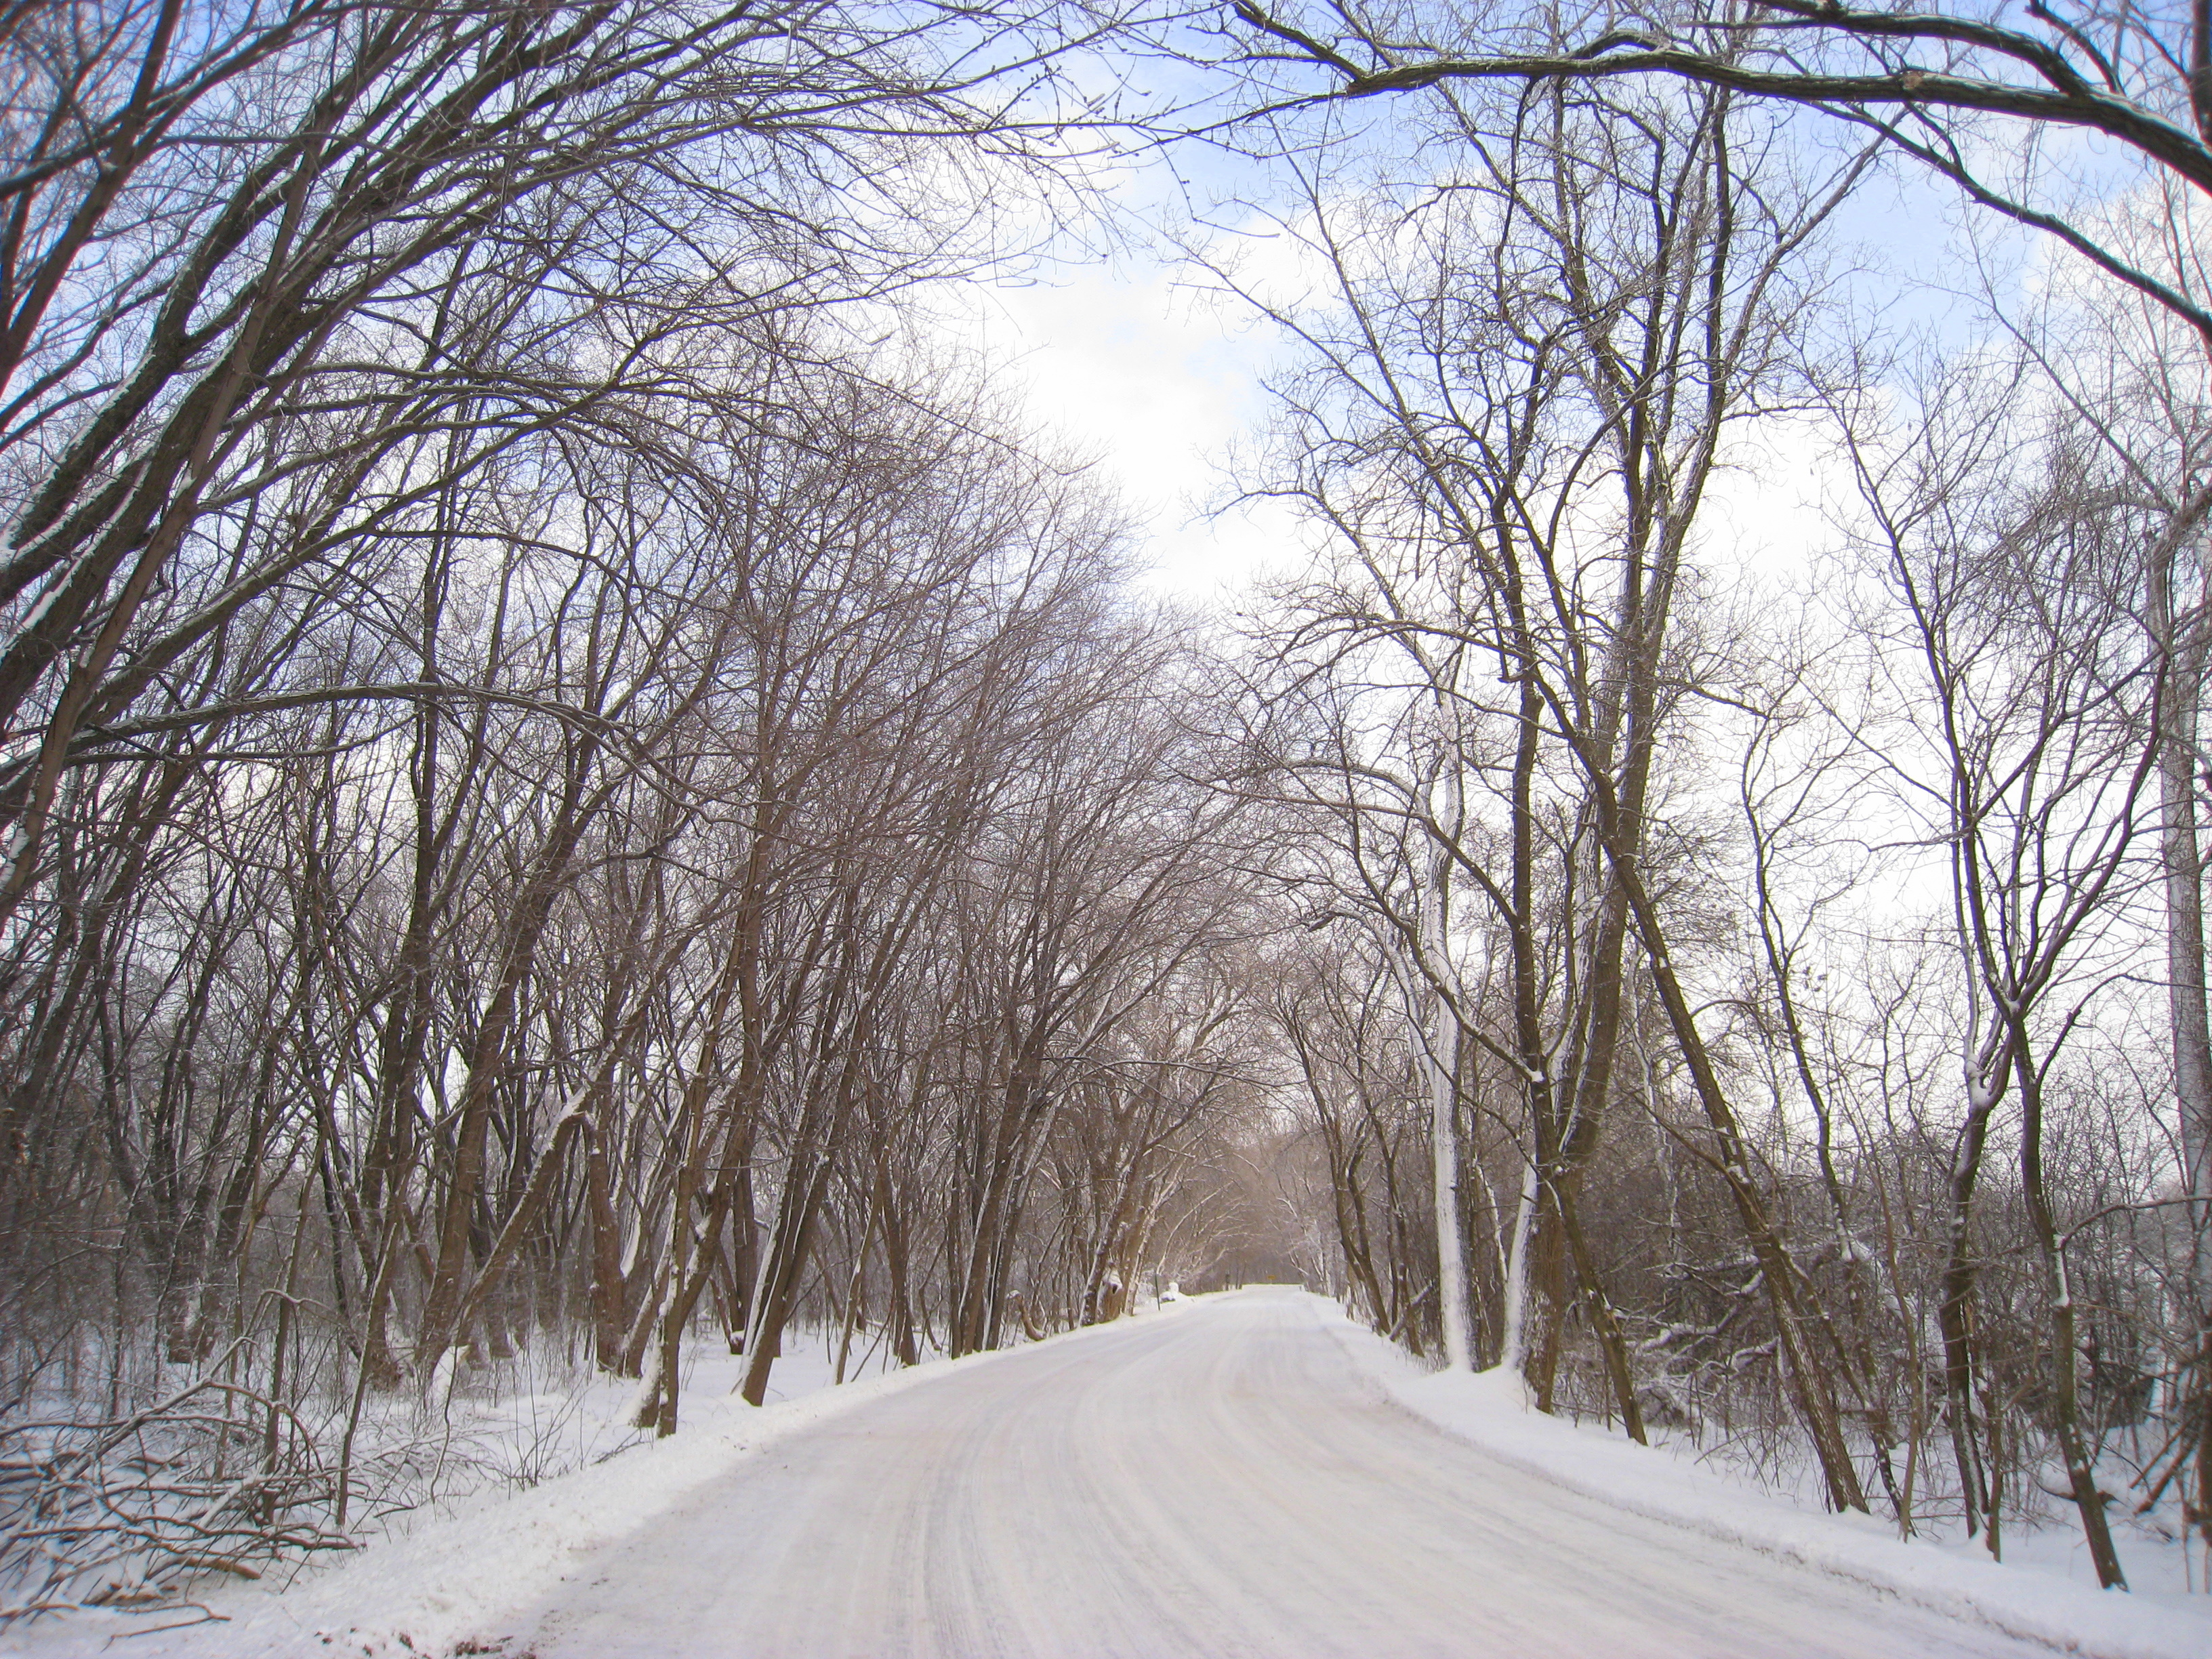 University of Wisconsin - Madison Arboretum